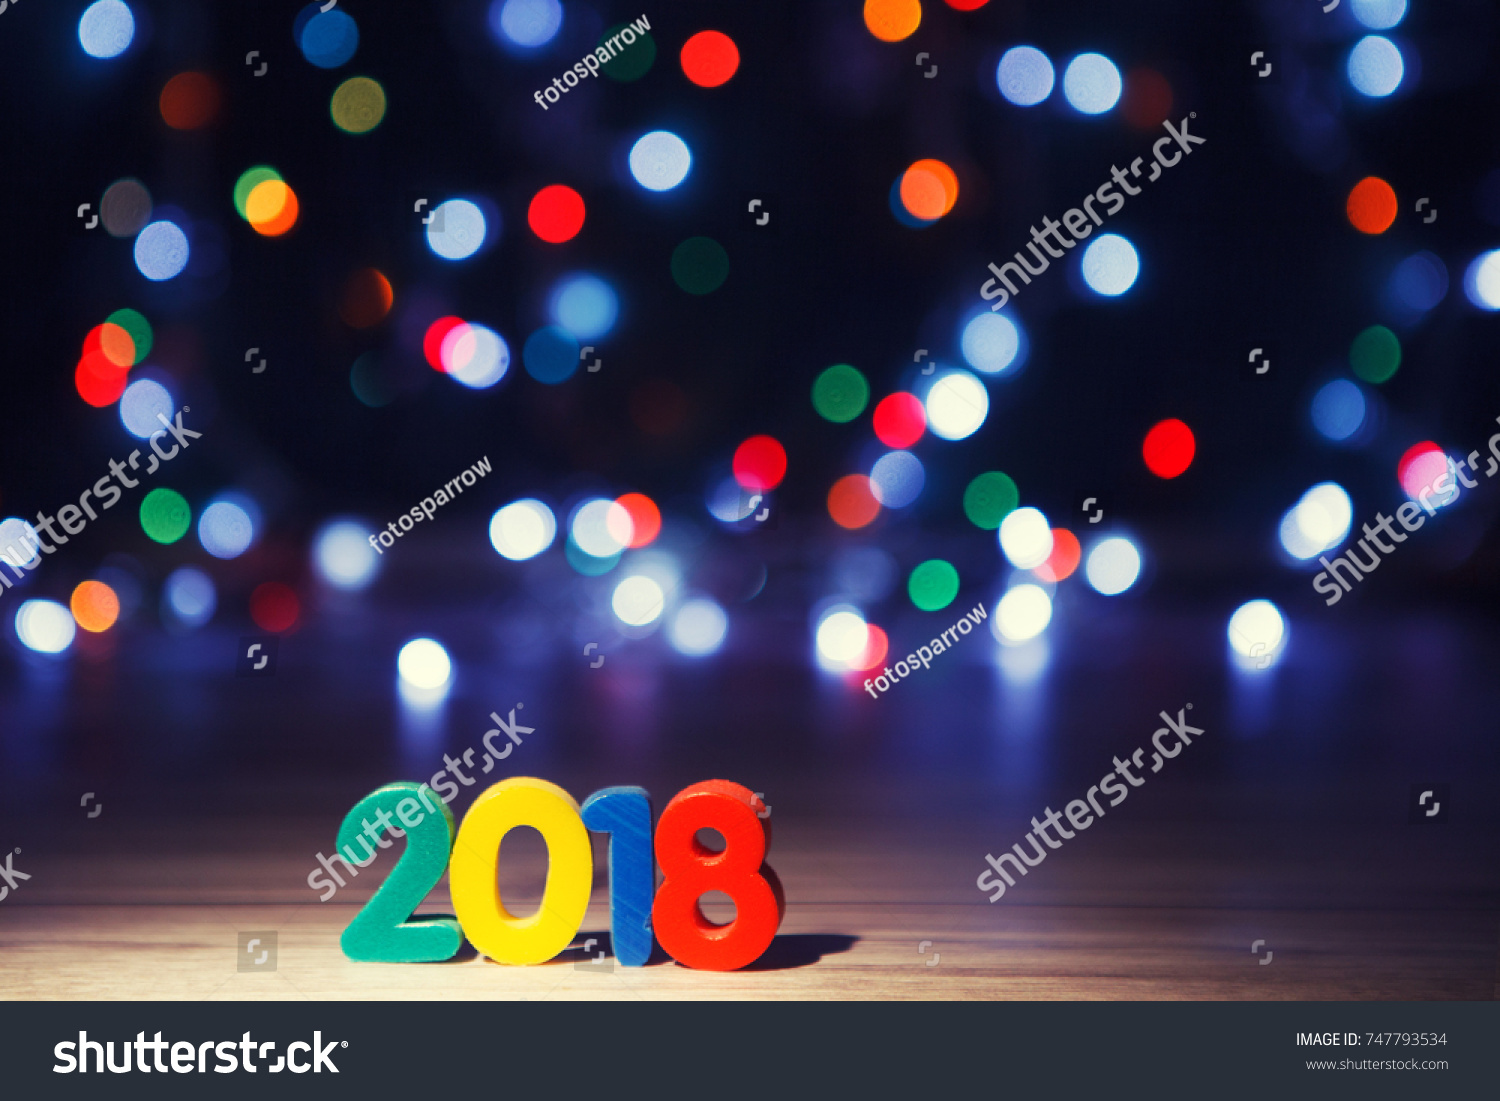 2018 written on a black background and blurred christmas lights 2018 happy new year background